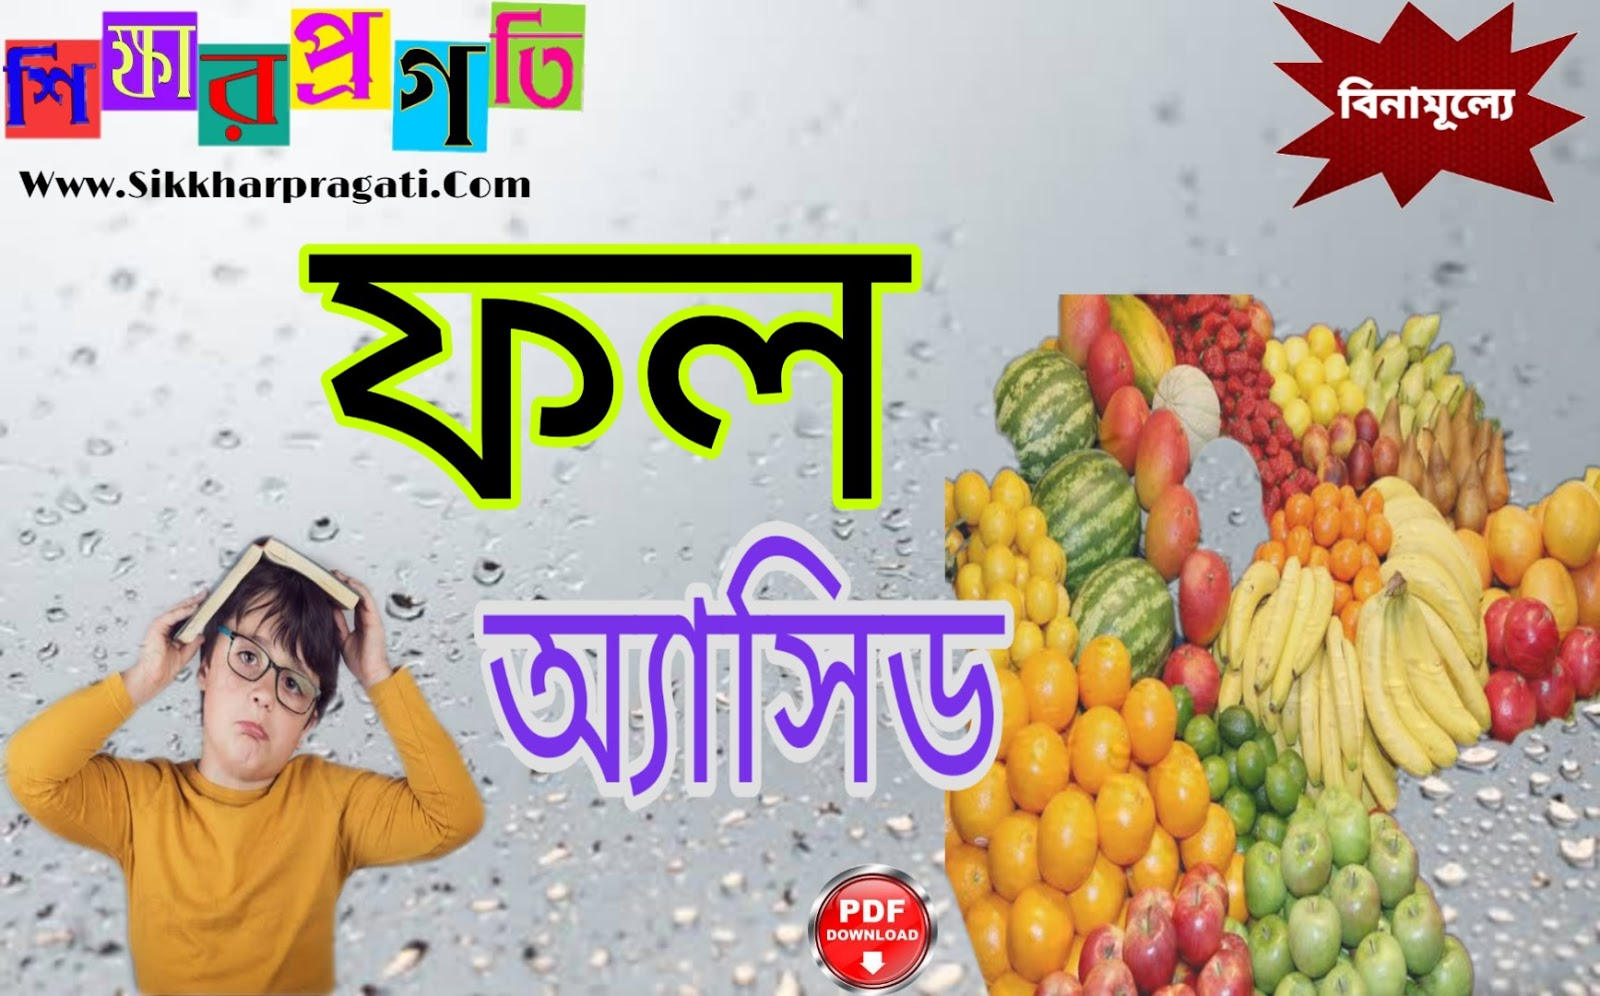 Life science fruit and acid pdf in Bengali